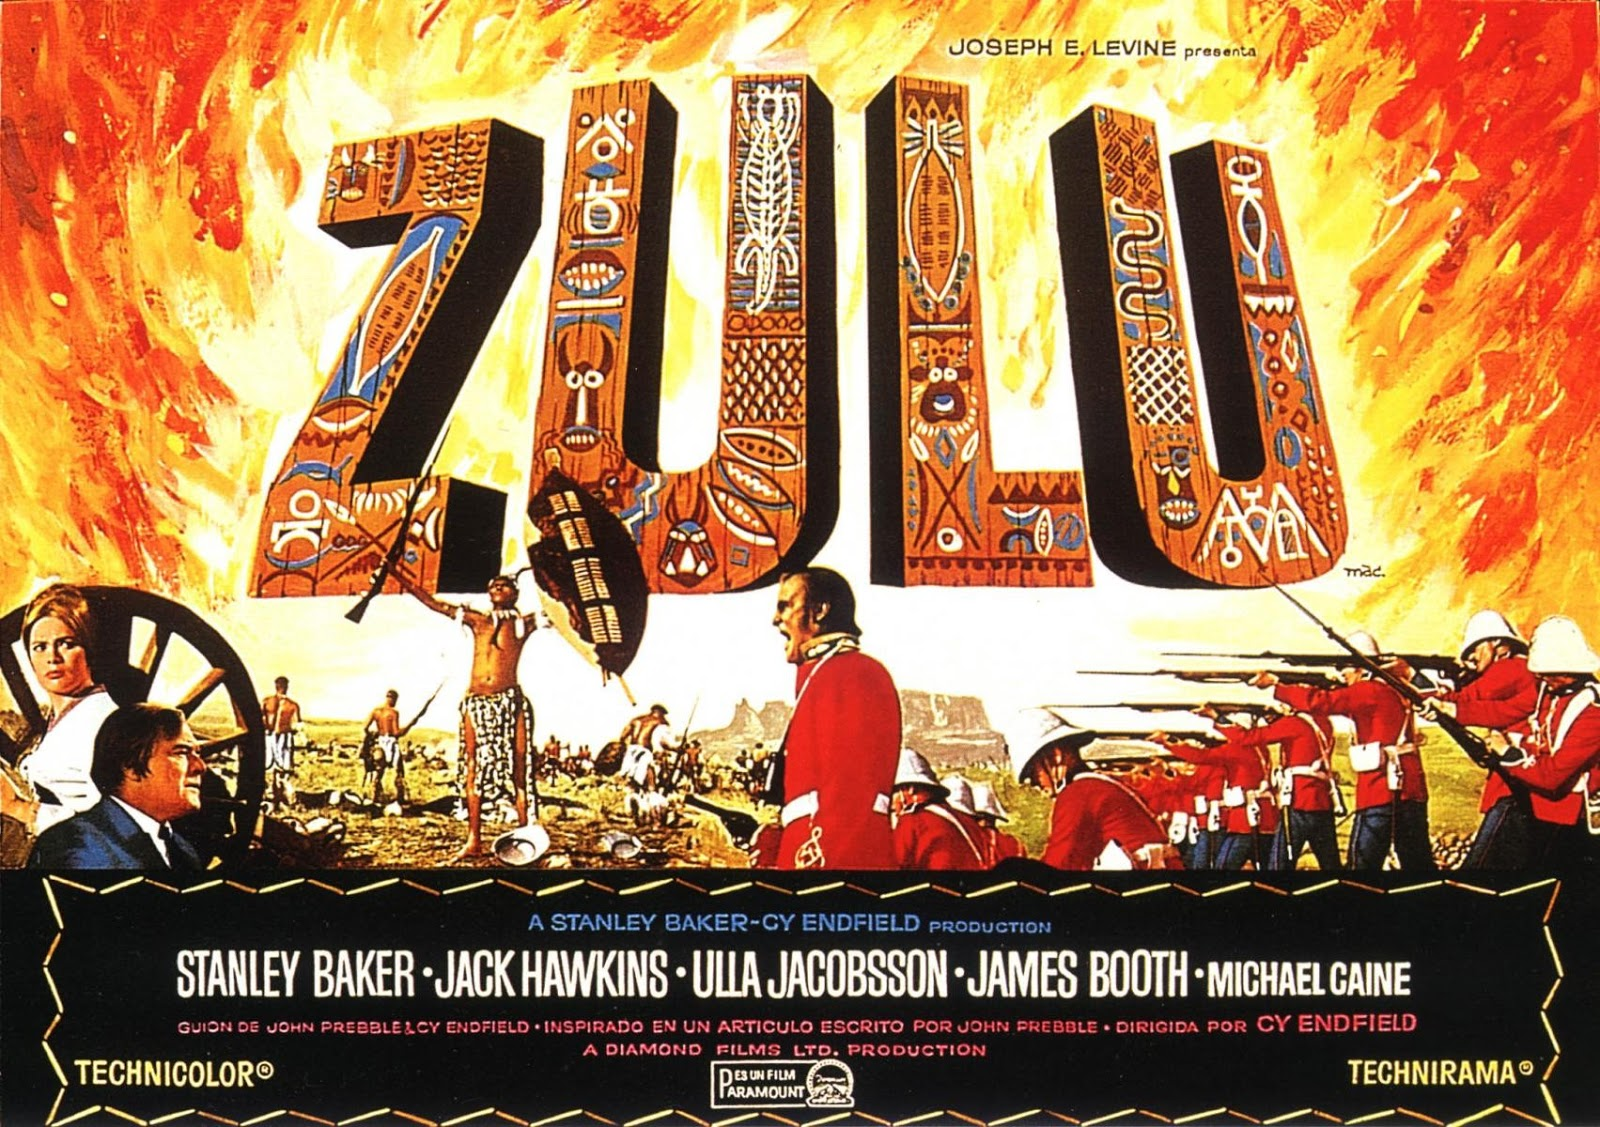 963cb7ea62e5a The 1964 film Zulu is one of my favourite war films. It is a dramatic  story